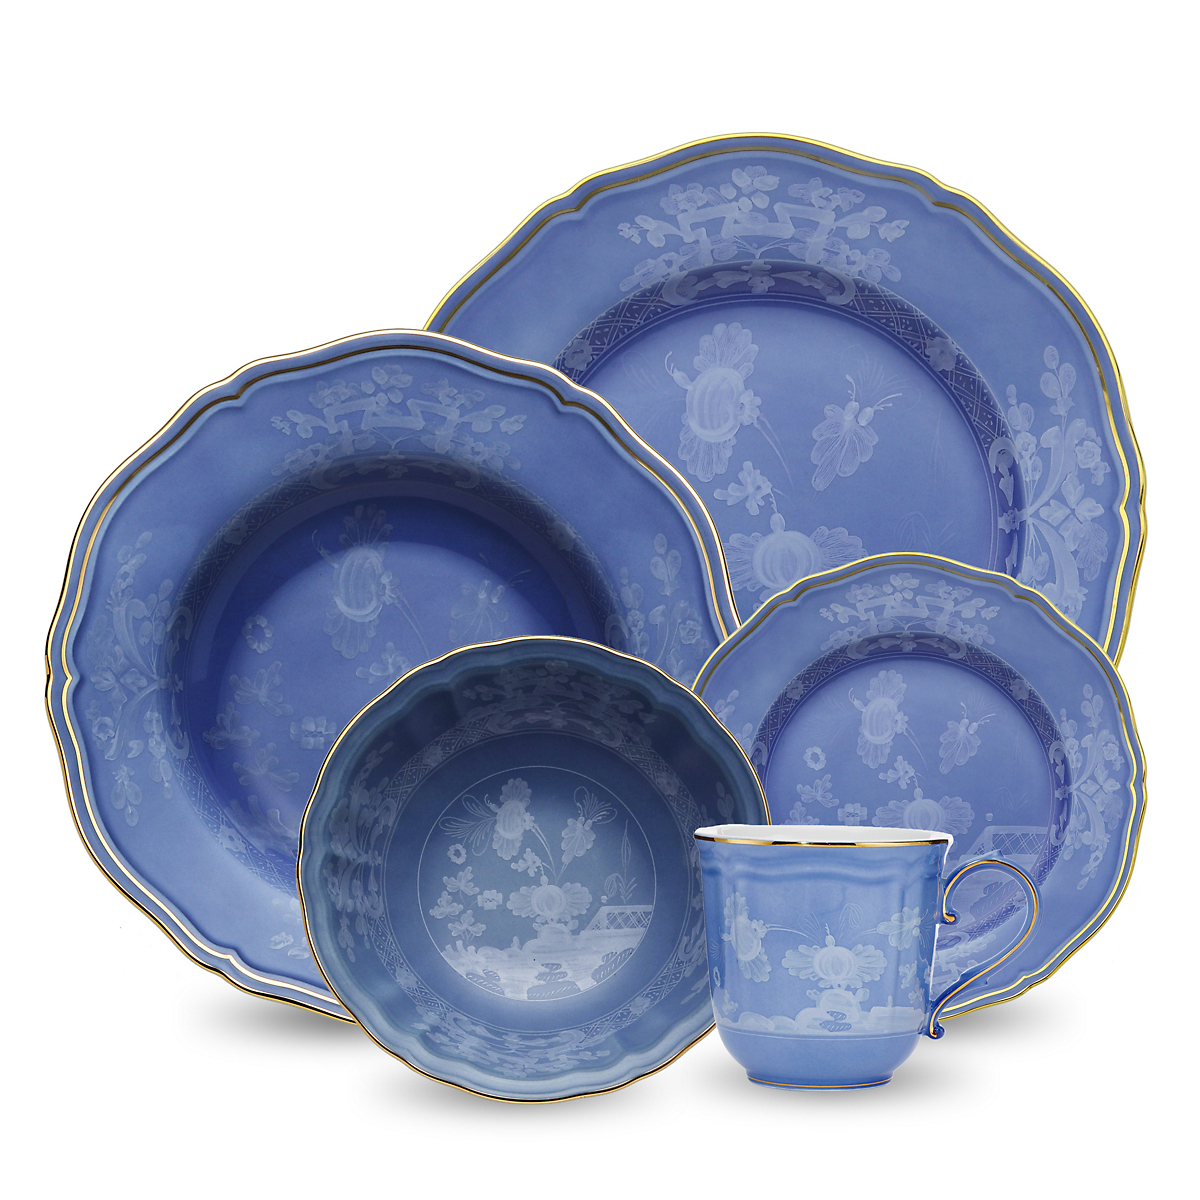 Richard Ginori Oriente Italiano Dinnerware, Pervinca